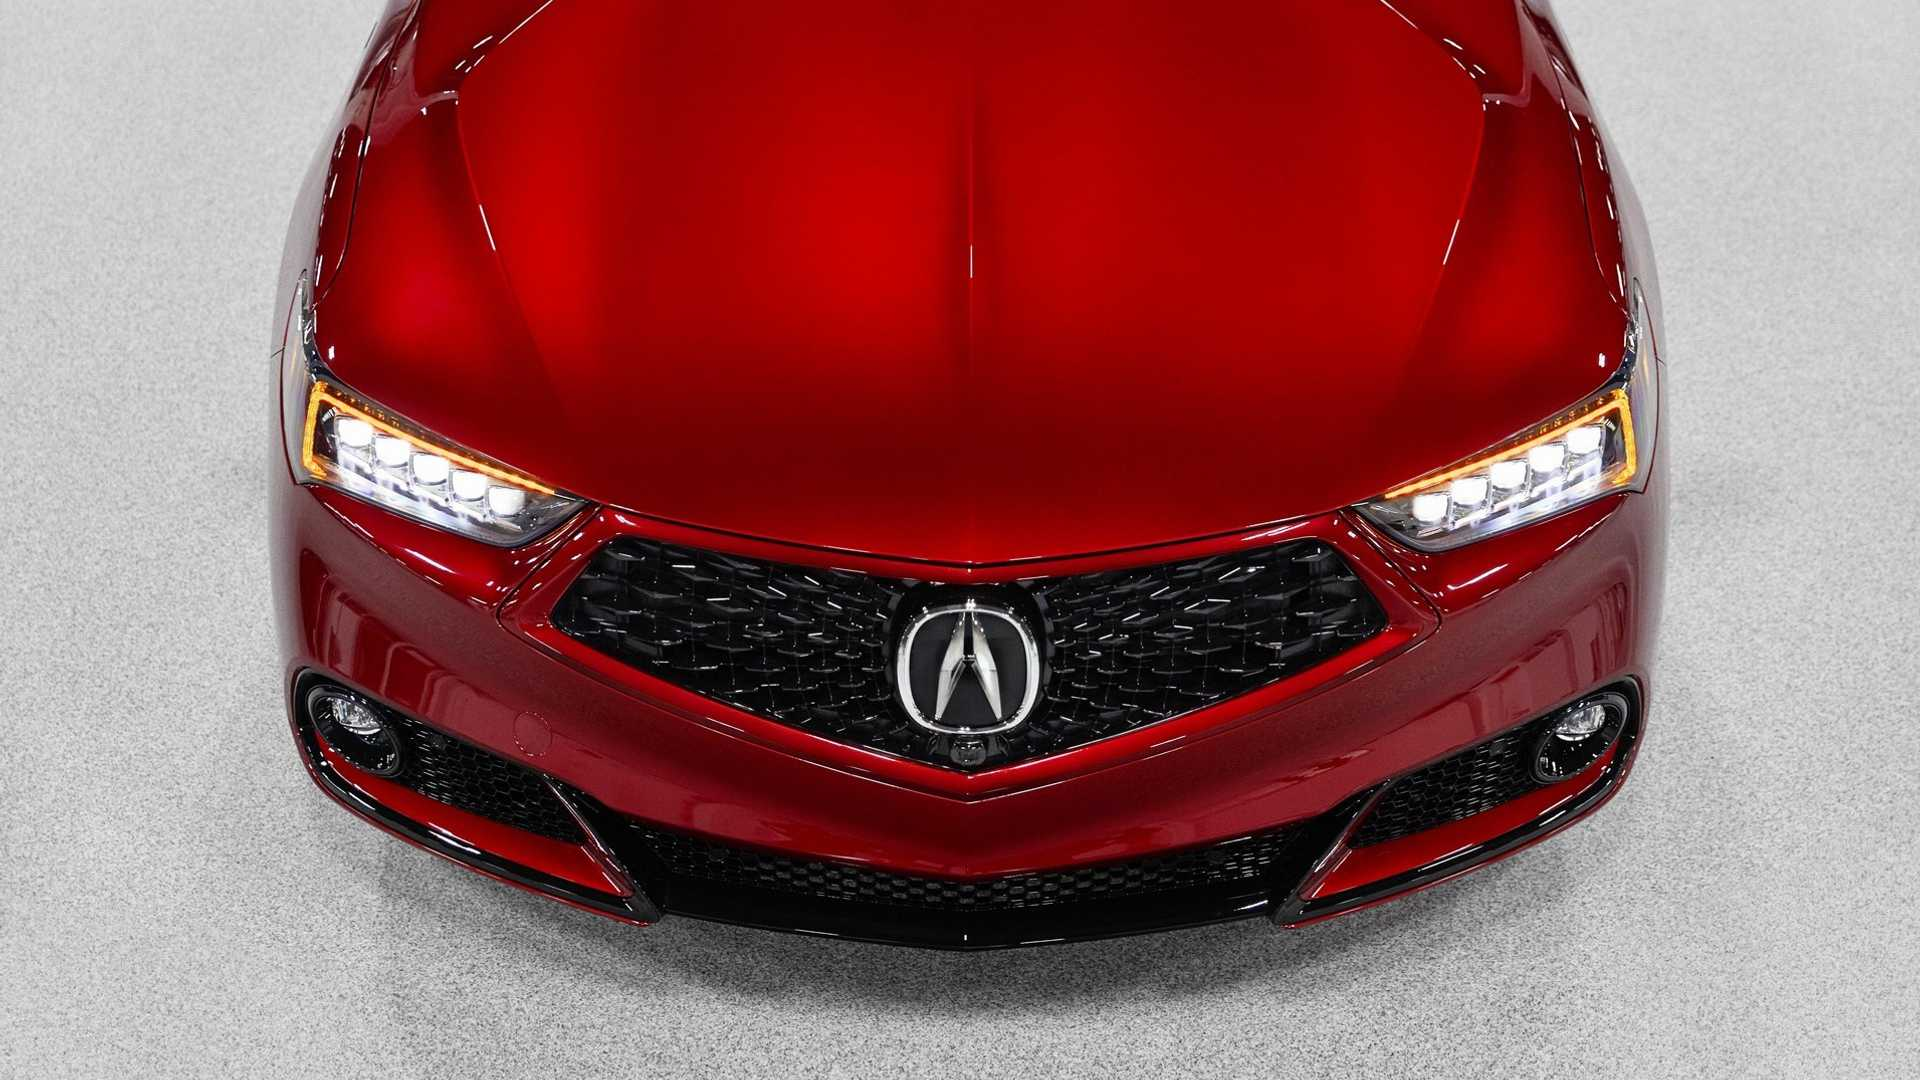 2020-acura-tlx-pmc-edition (4).jpg